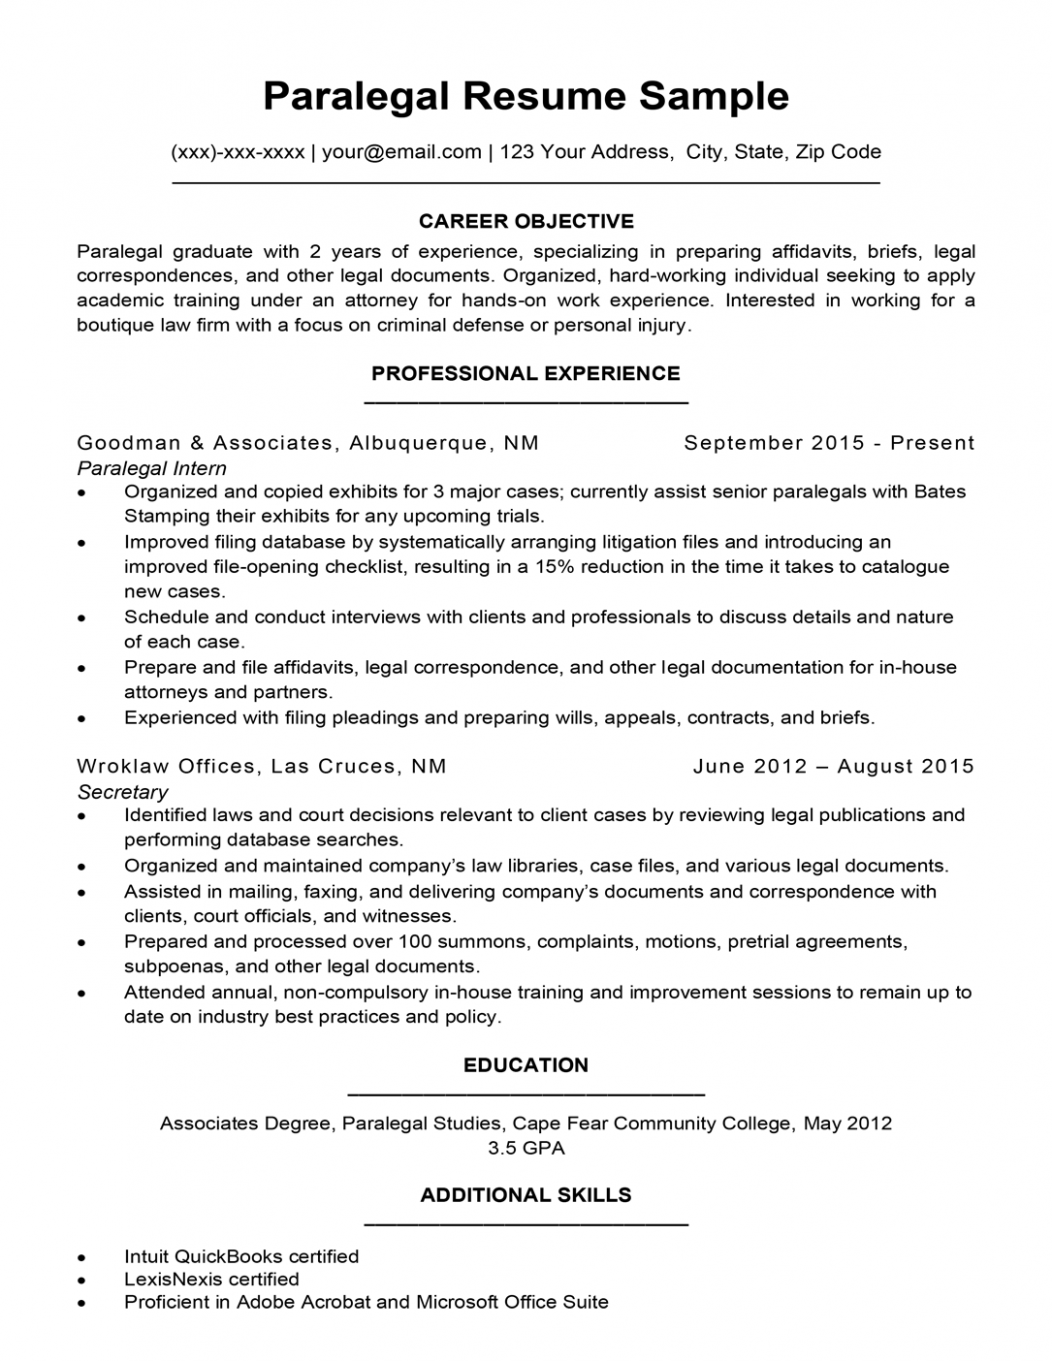 Career Objective Examples For Law Graduate In 2021 Career Objective Examples Resume Objective Resume Template Examples